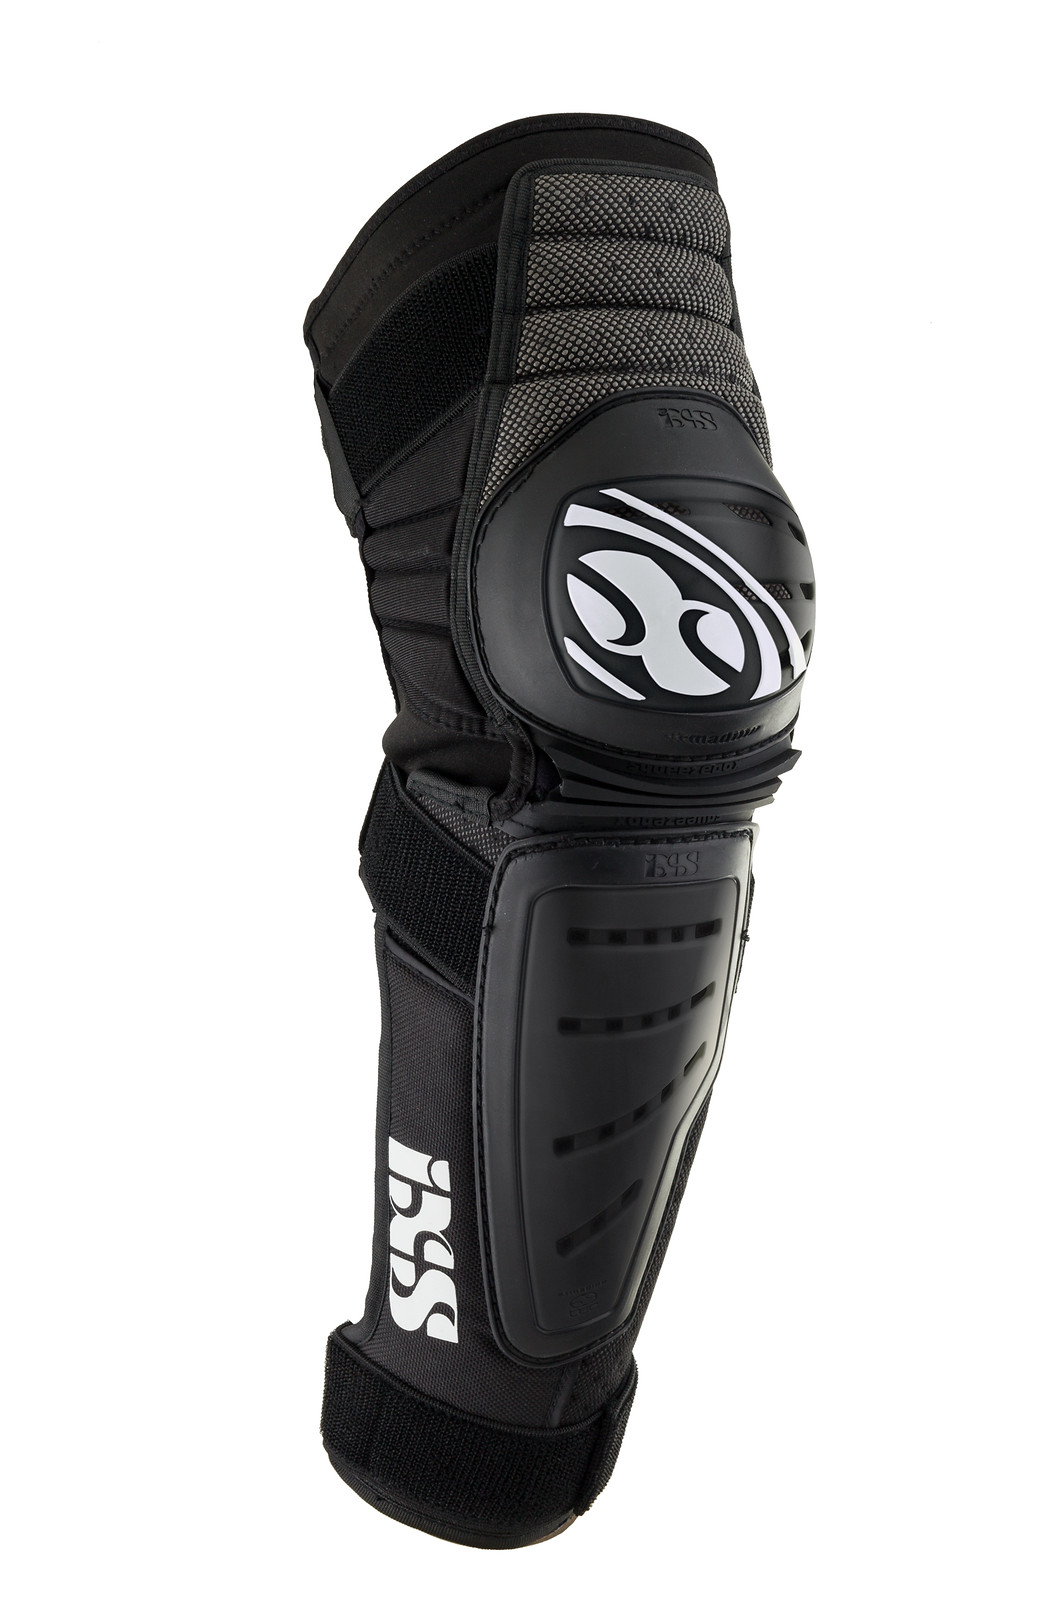 Continental Bike Tires >> iXS Cleaver Knee/Shin Pad - Reviews, Comparisons, Specs ...